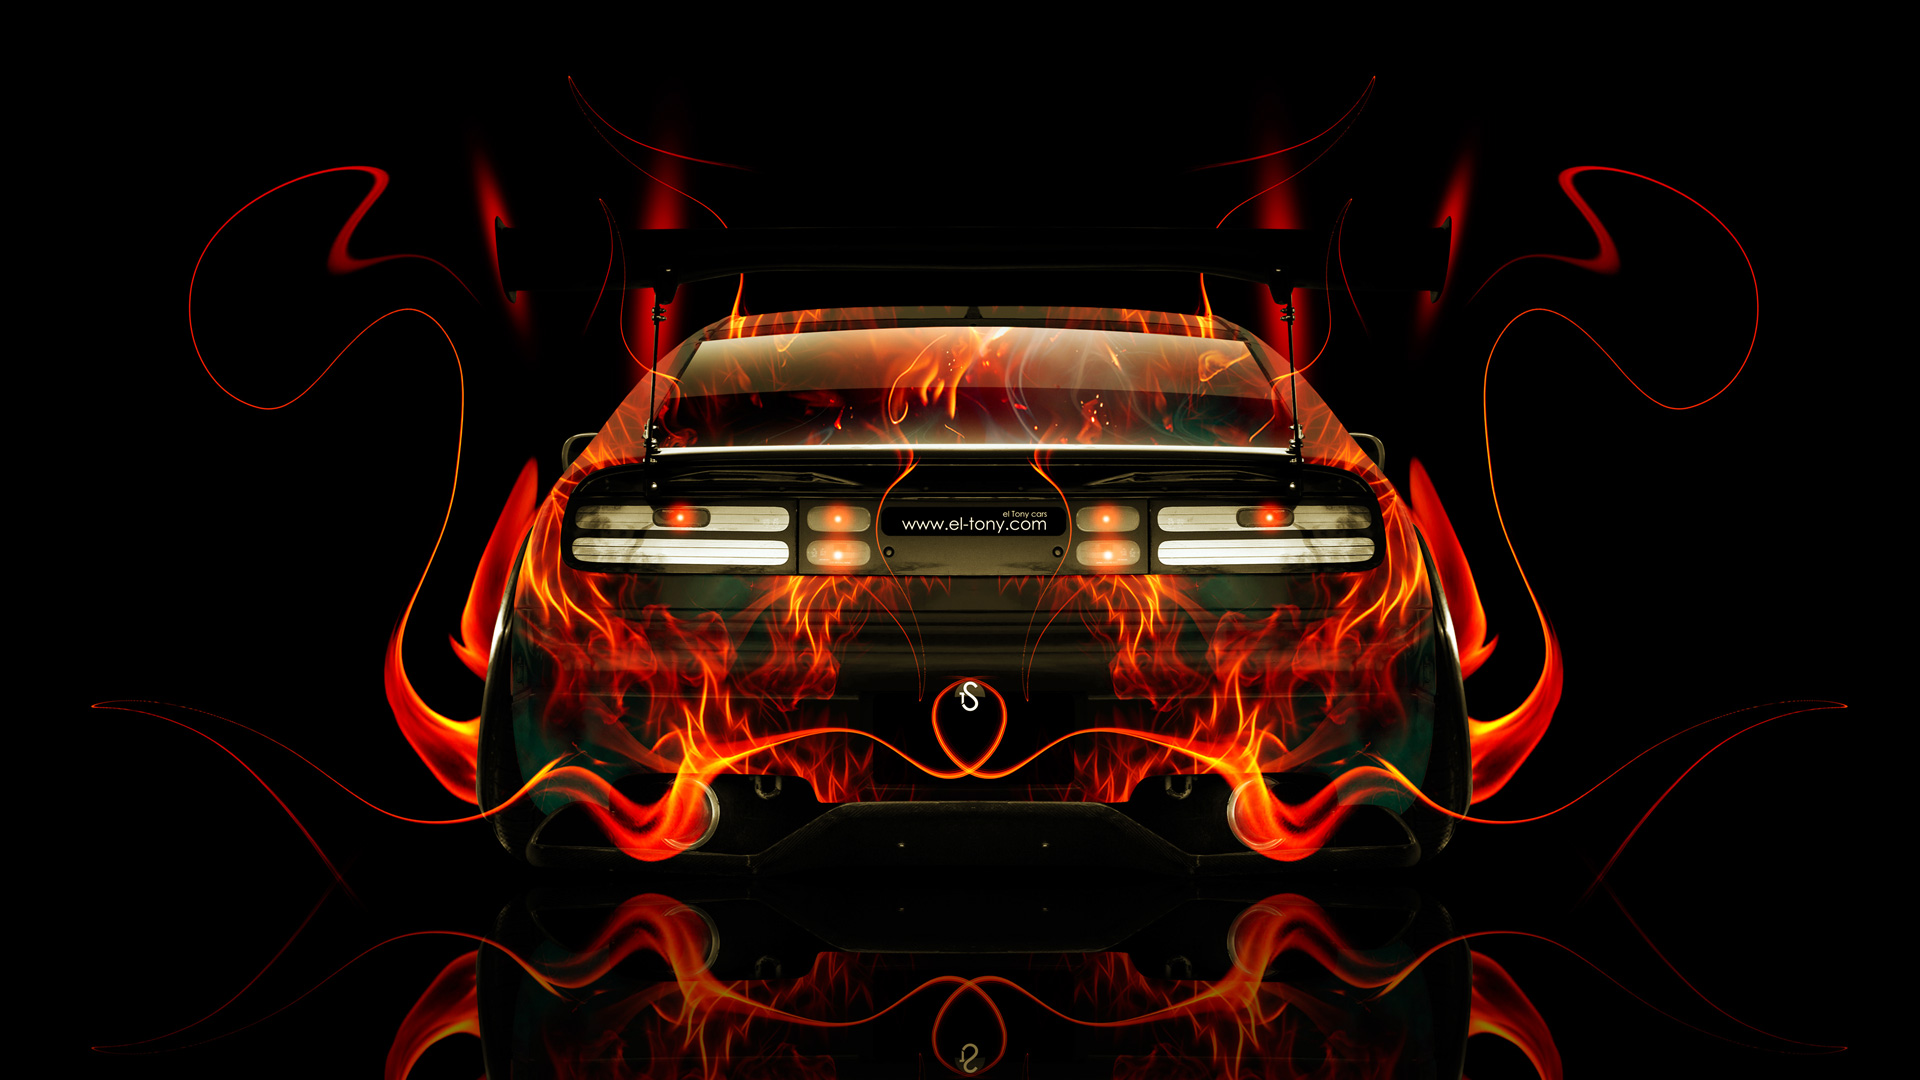 Nissan 300zx Jdm Back Fire Abstract Car 2014 El Tony